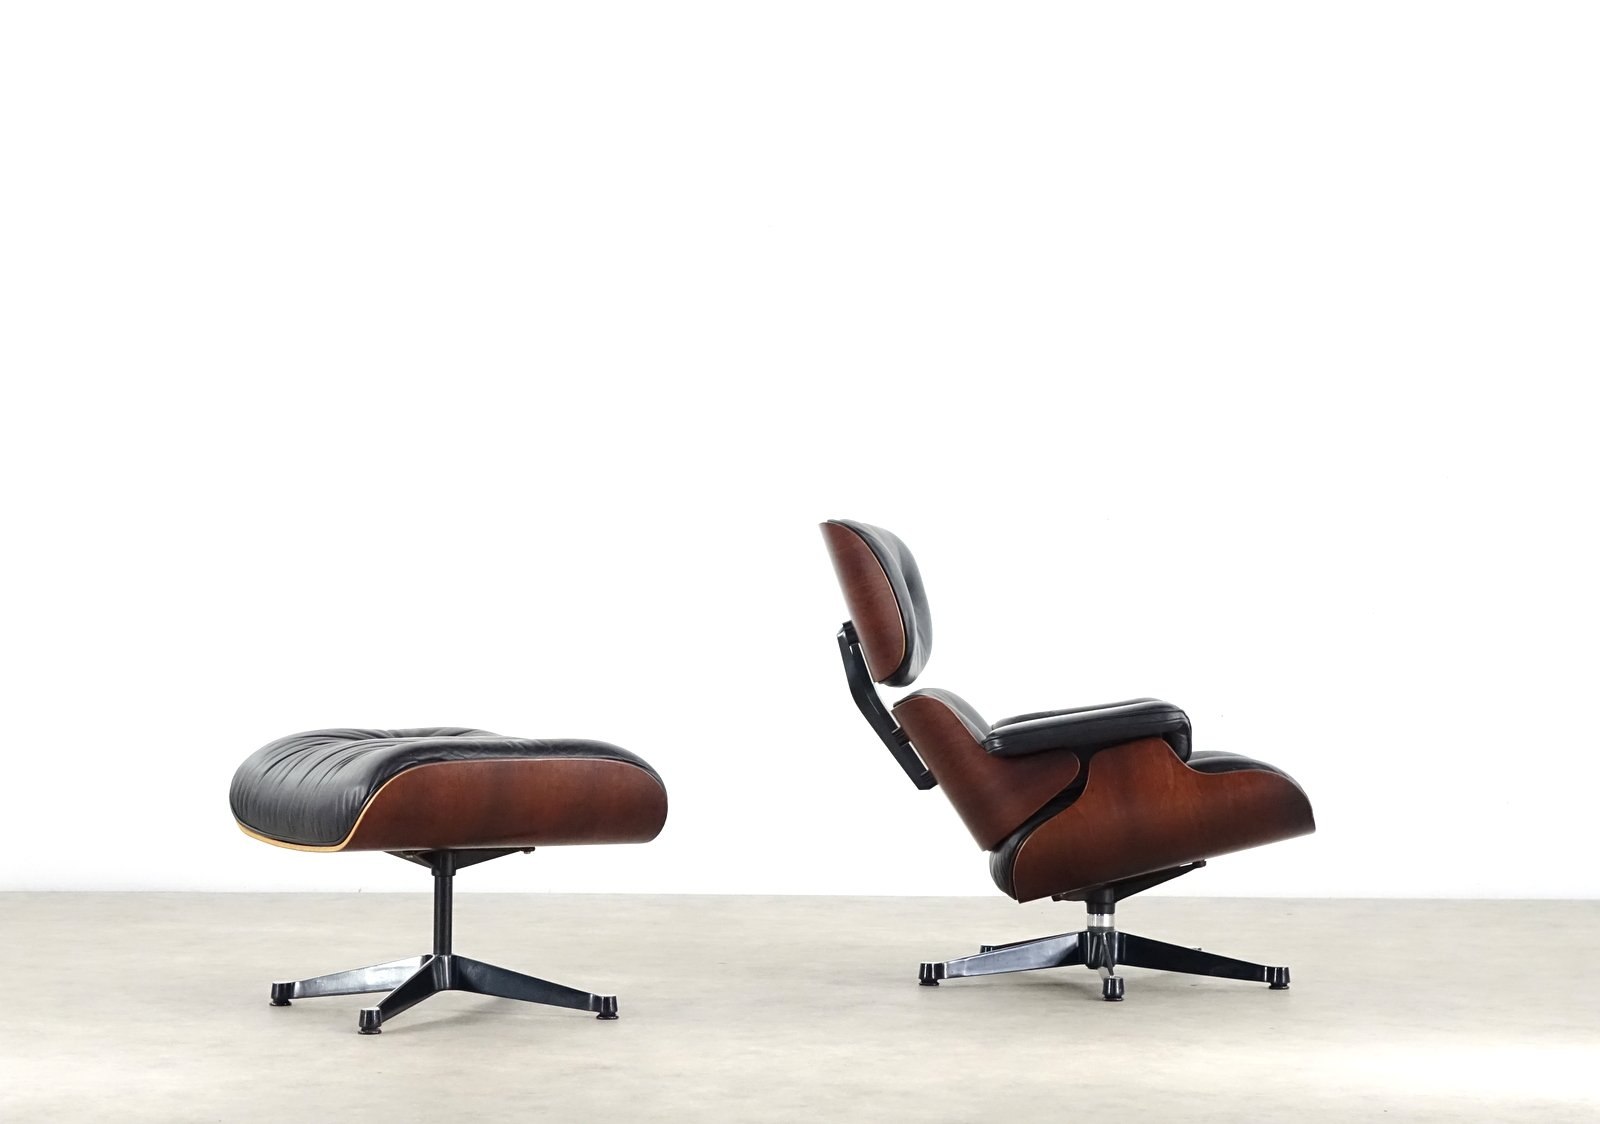 Eames lounge chair ottoman by charles ray eames for for Charles eames lounge chair nachbildung